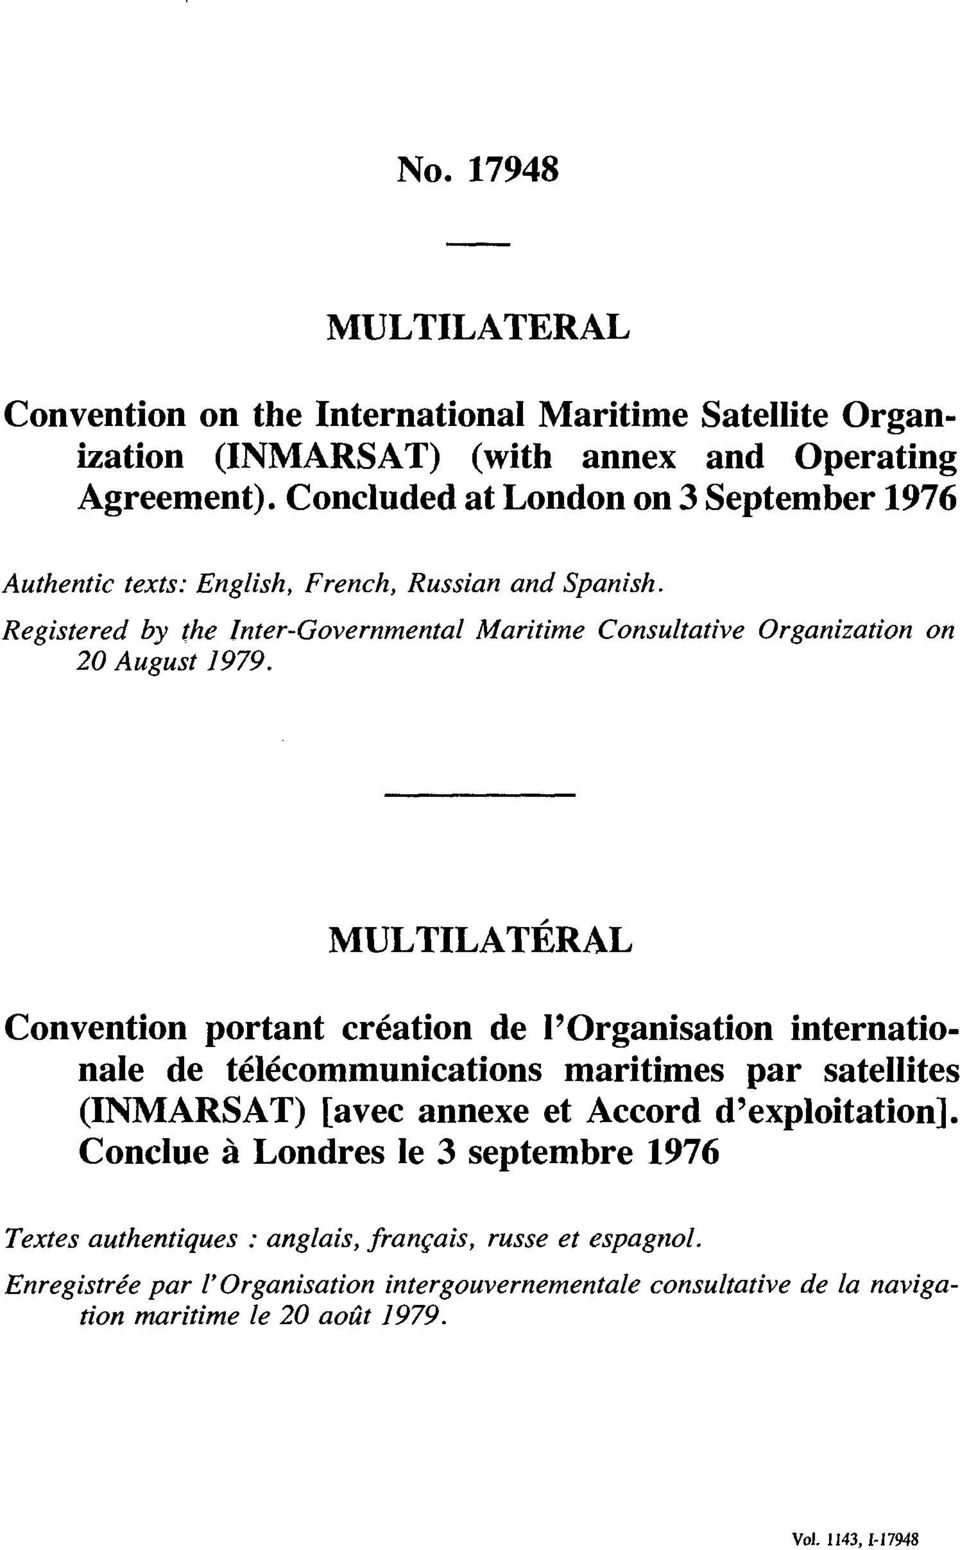 Registered by the Inter-Governmental Maritime Consultative Organization on 20 August 1979.